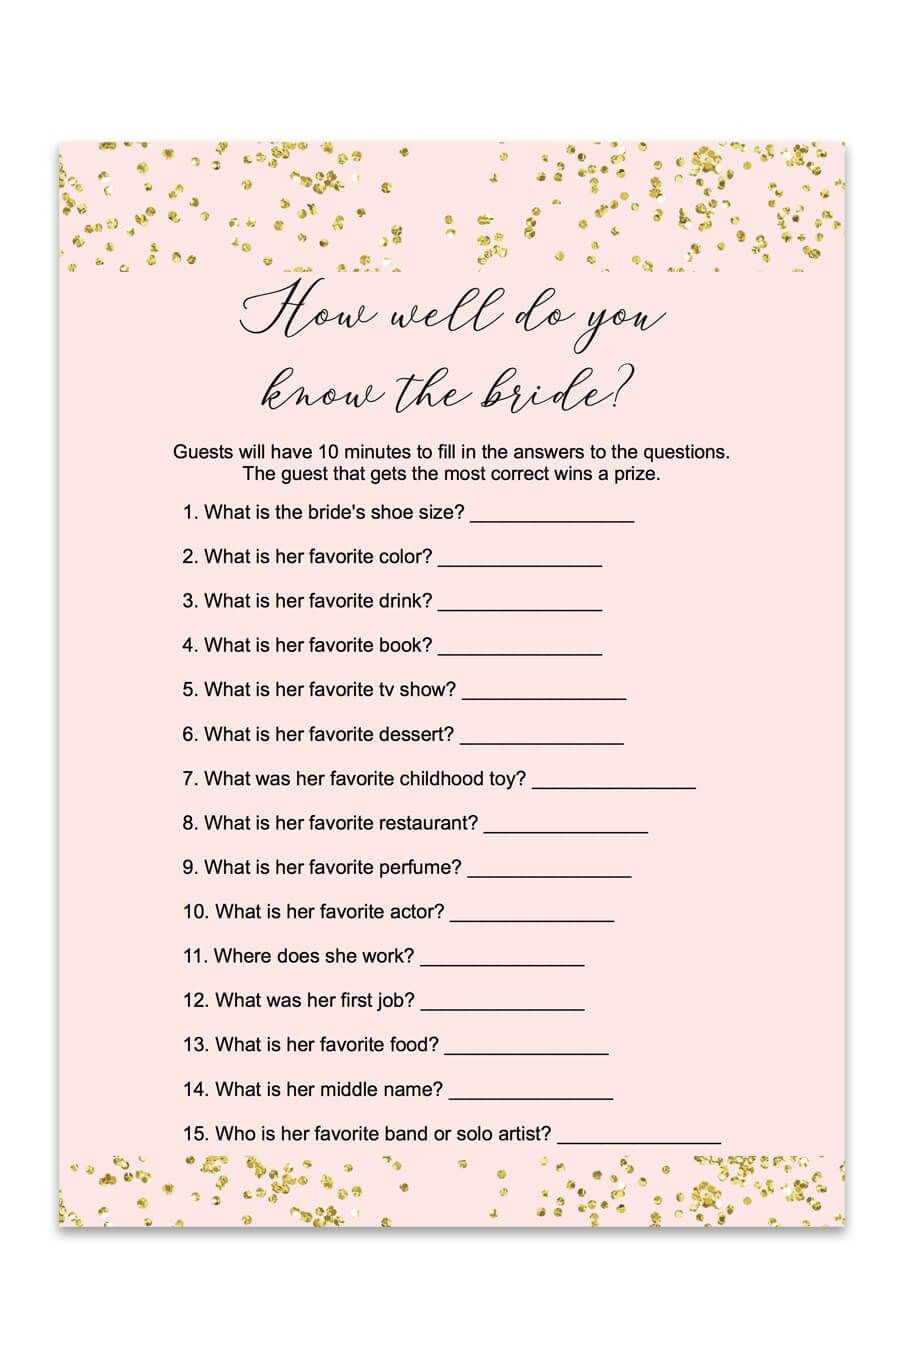 Blush And Confetti How Well Do You Know The Bride Game | Love<3 - How Well Do You Know The Bride Game Free Printable